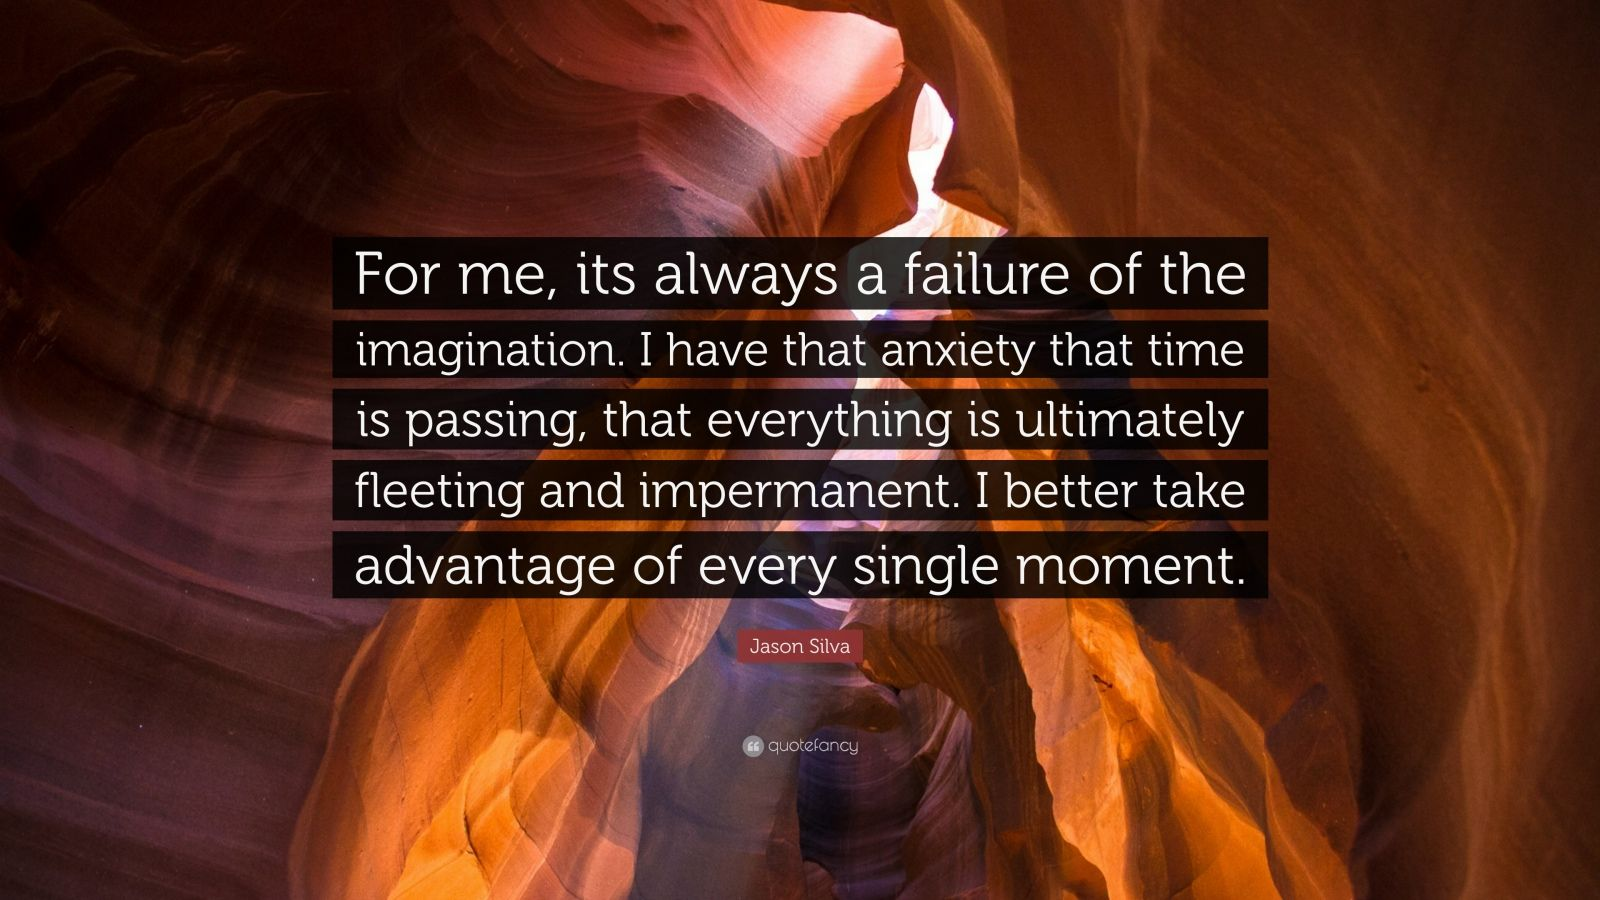 """Jason Silva Quote: """"For me, its always a failure of the imagination. I have that anxiety that time is passing, that everything is ultimately fleeting and impermanent. I better take advantage of every single moment."""""""